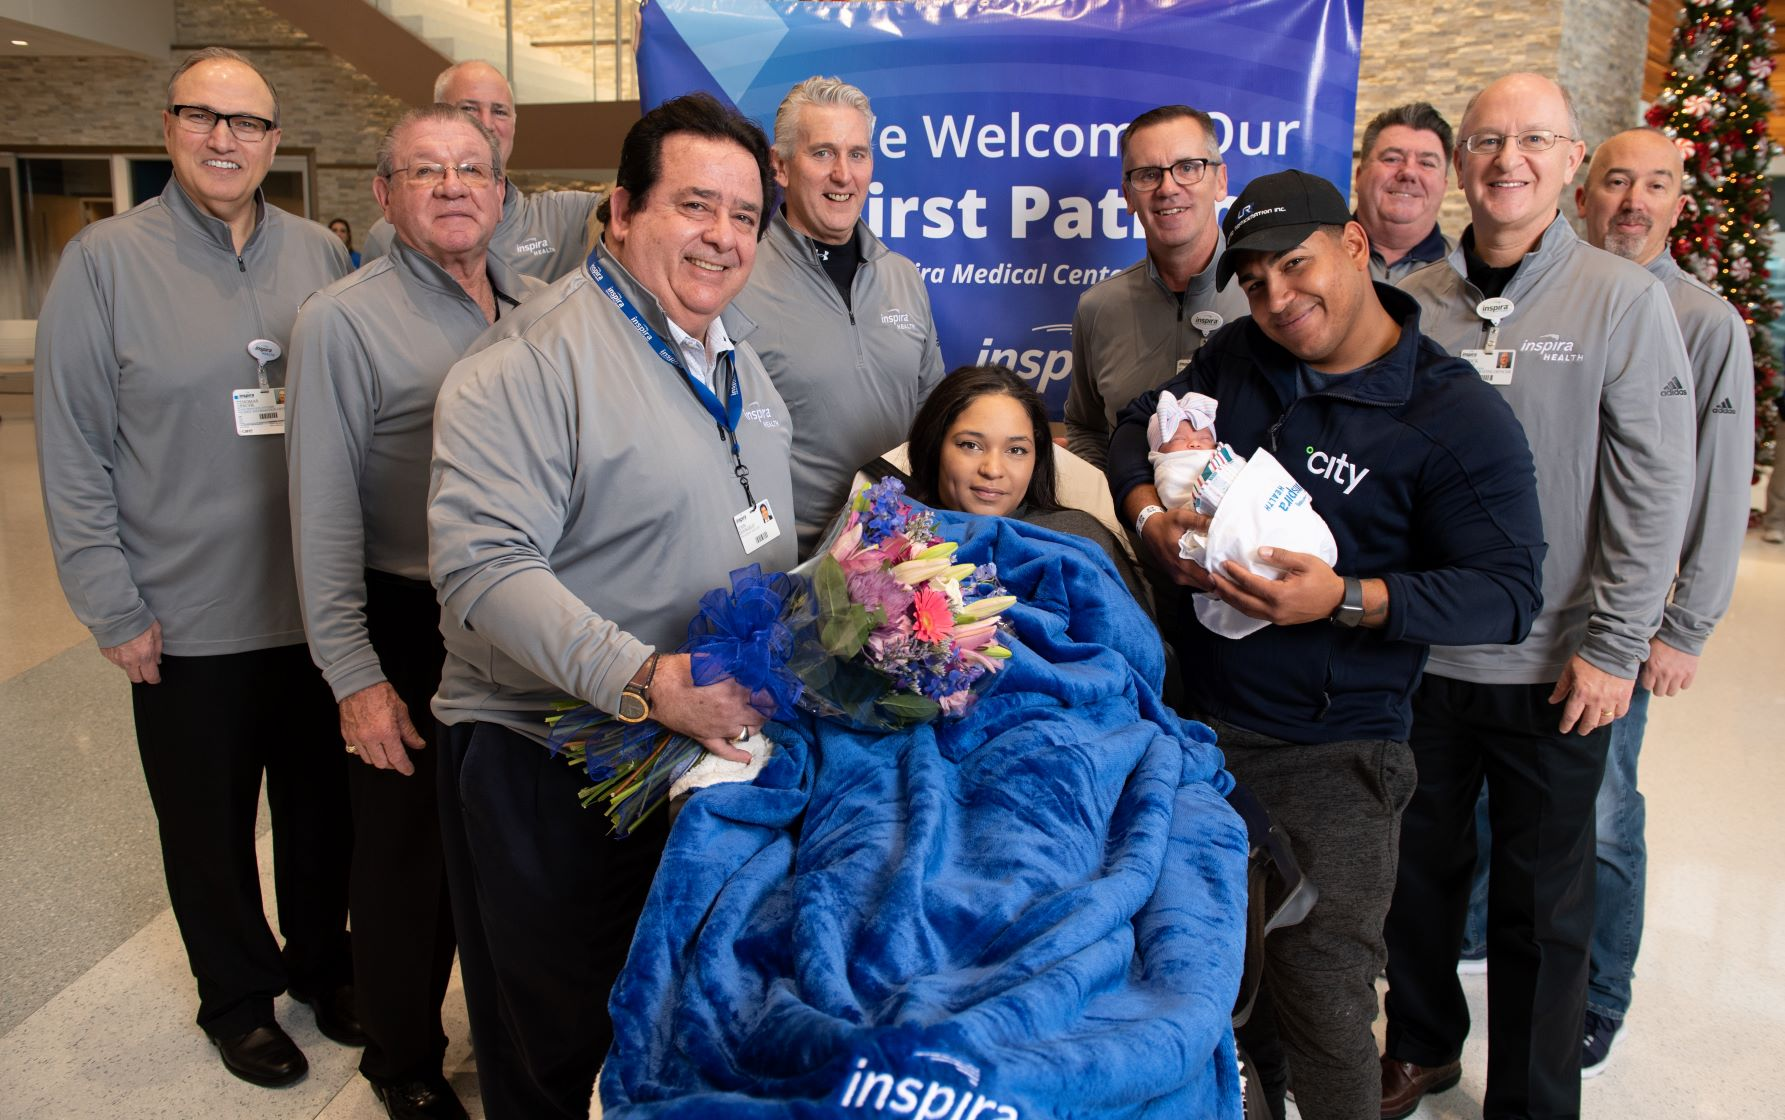 Inspira employees welcoming Mullicas first patient